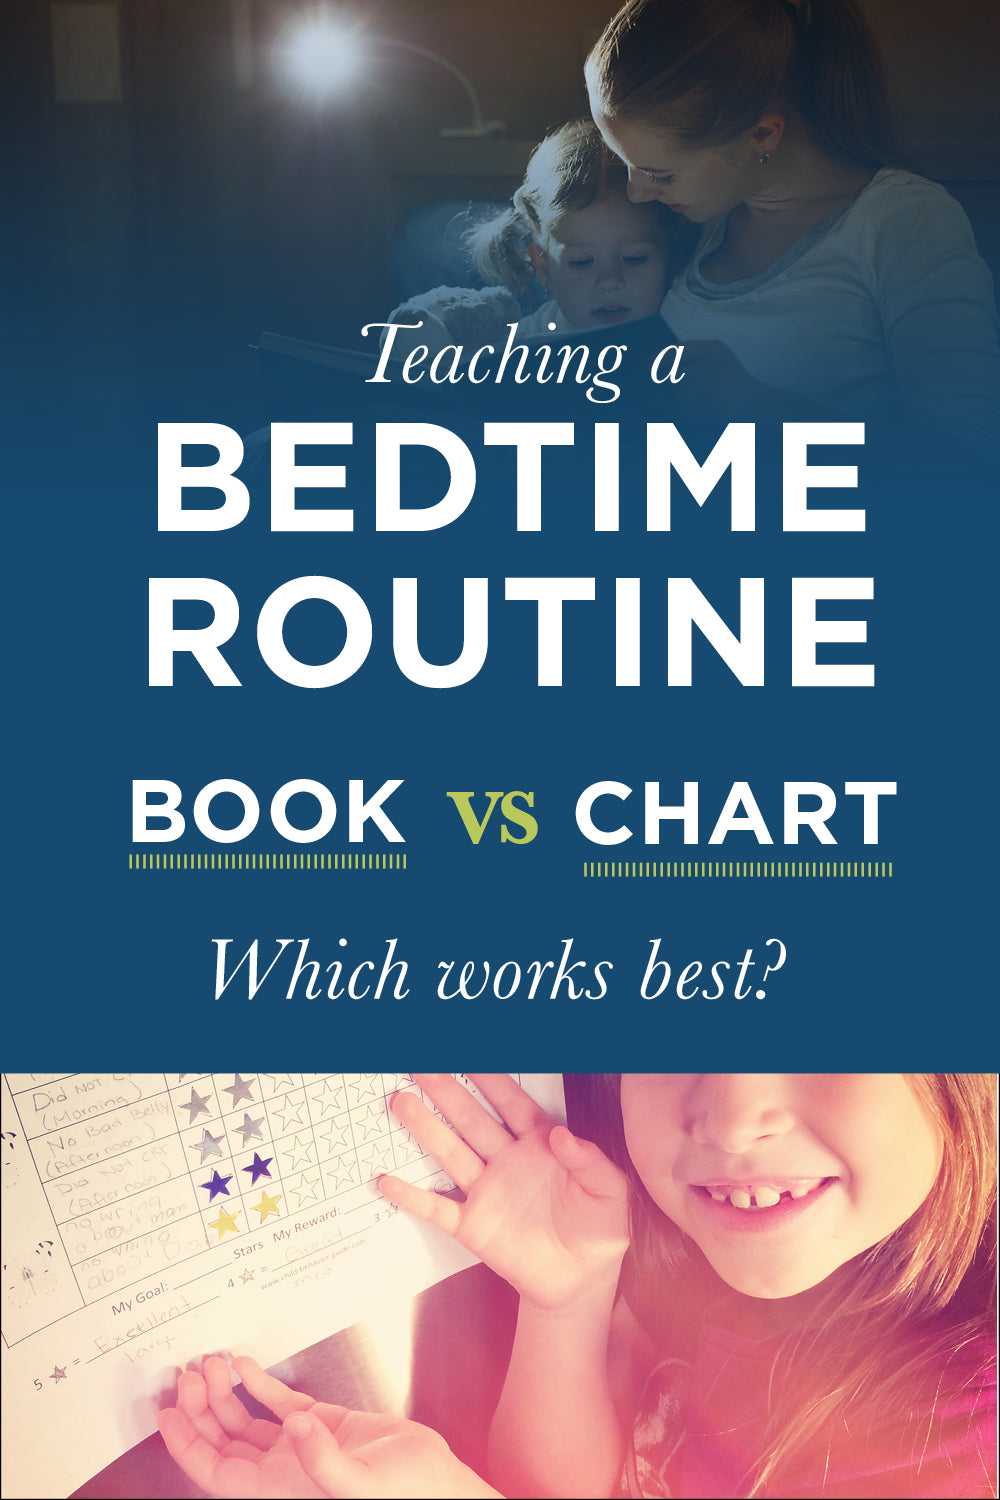 bedtime books are more effective than bedtime routine charts for toddlers